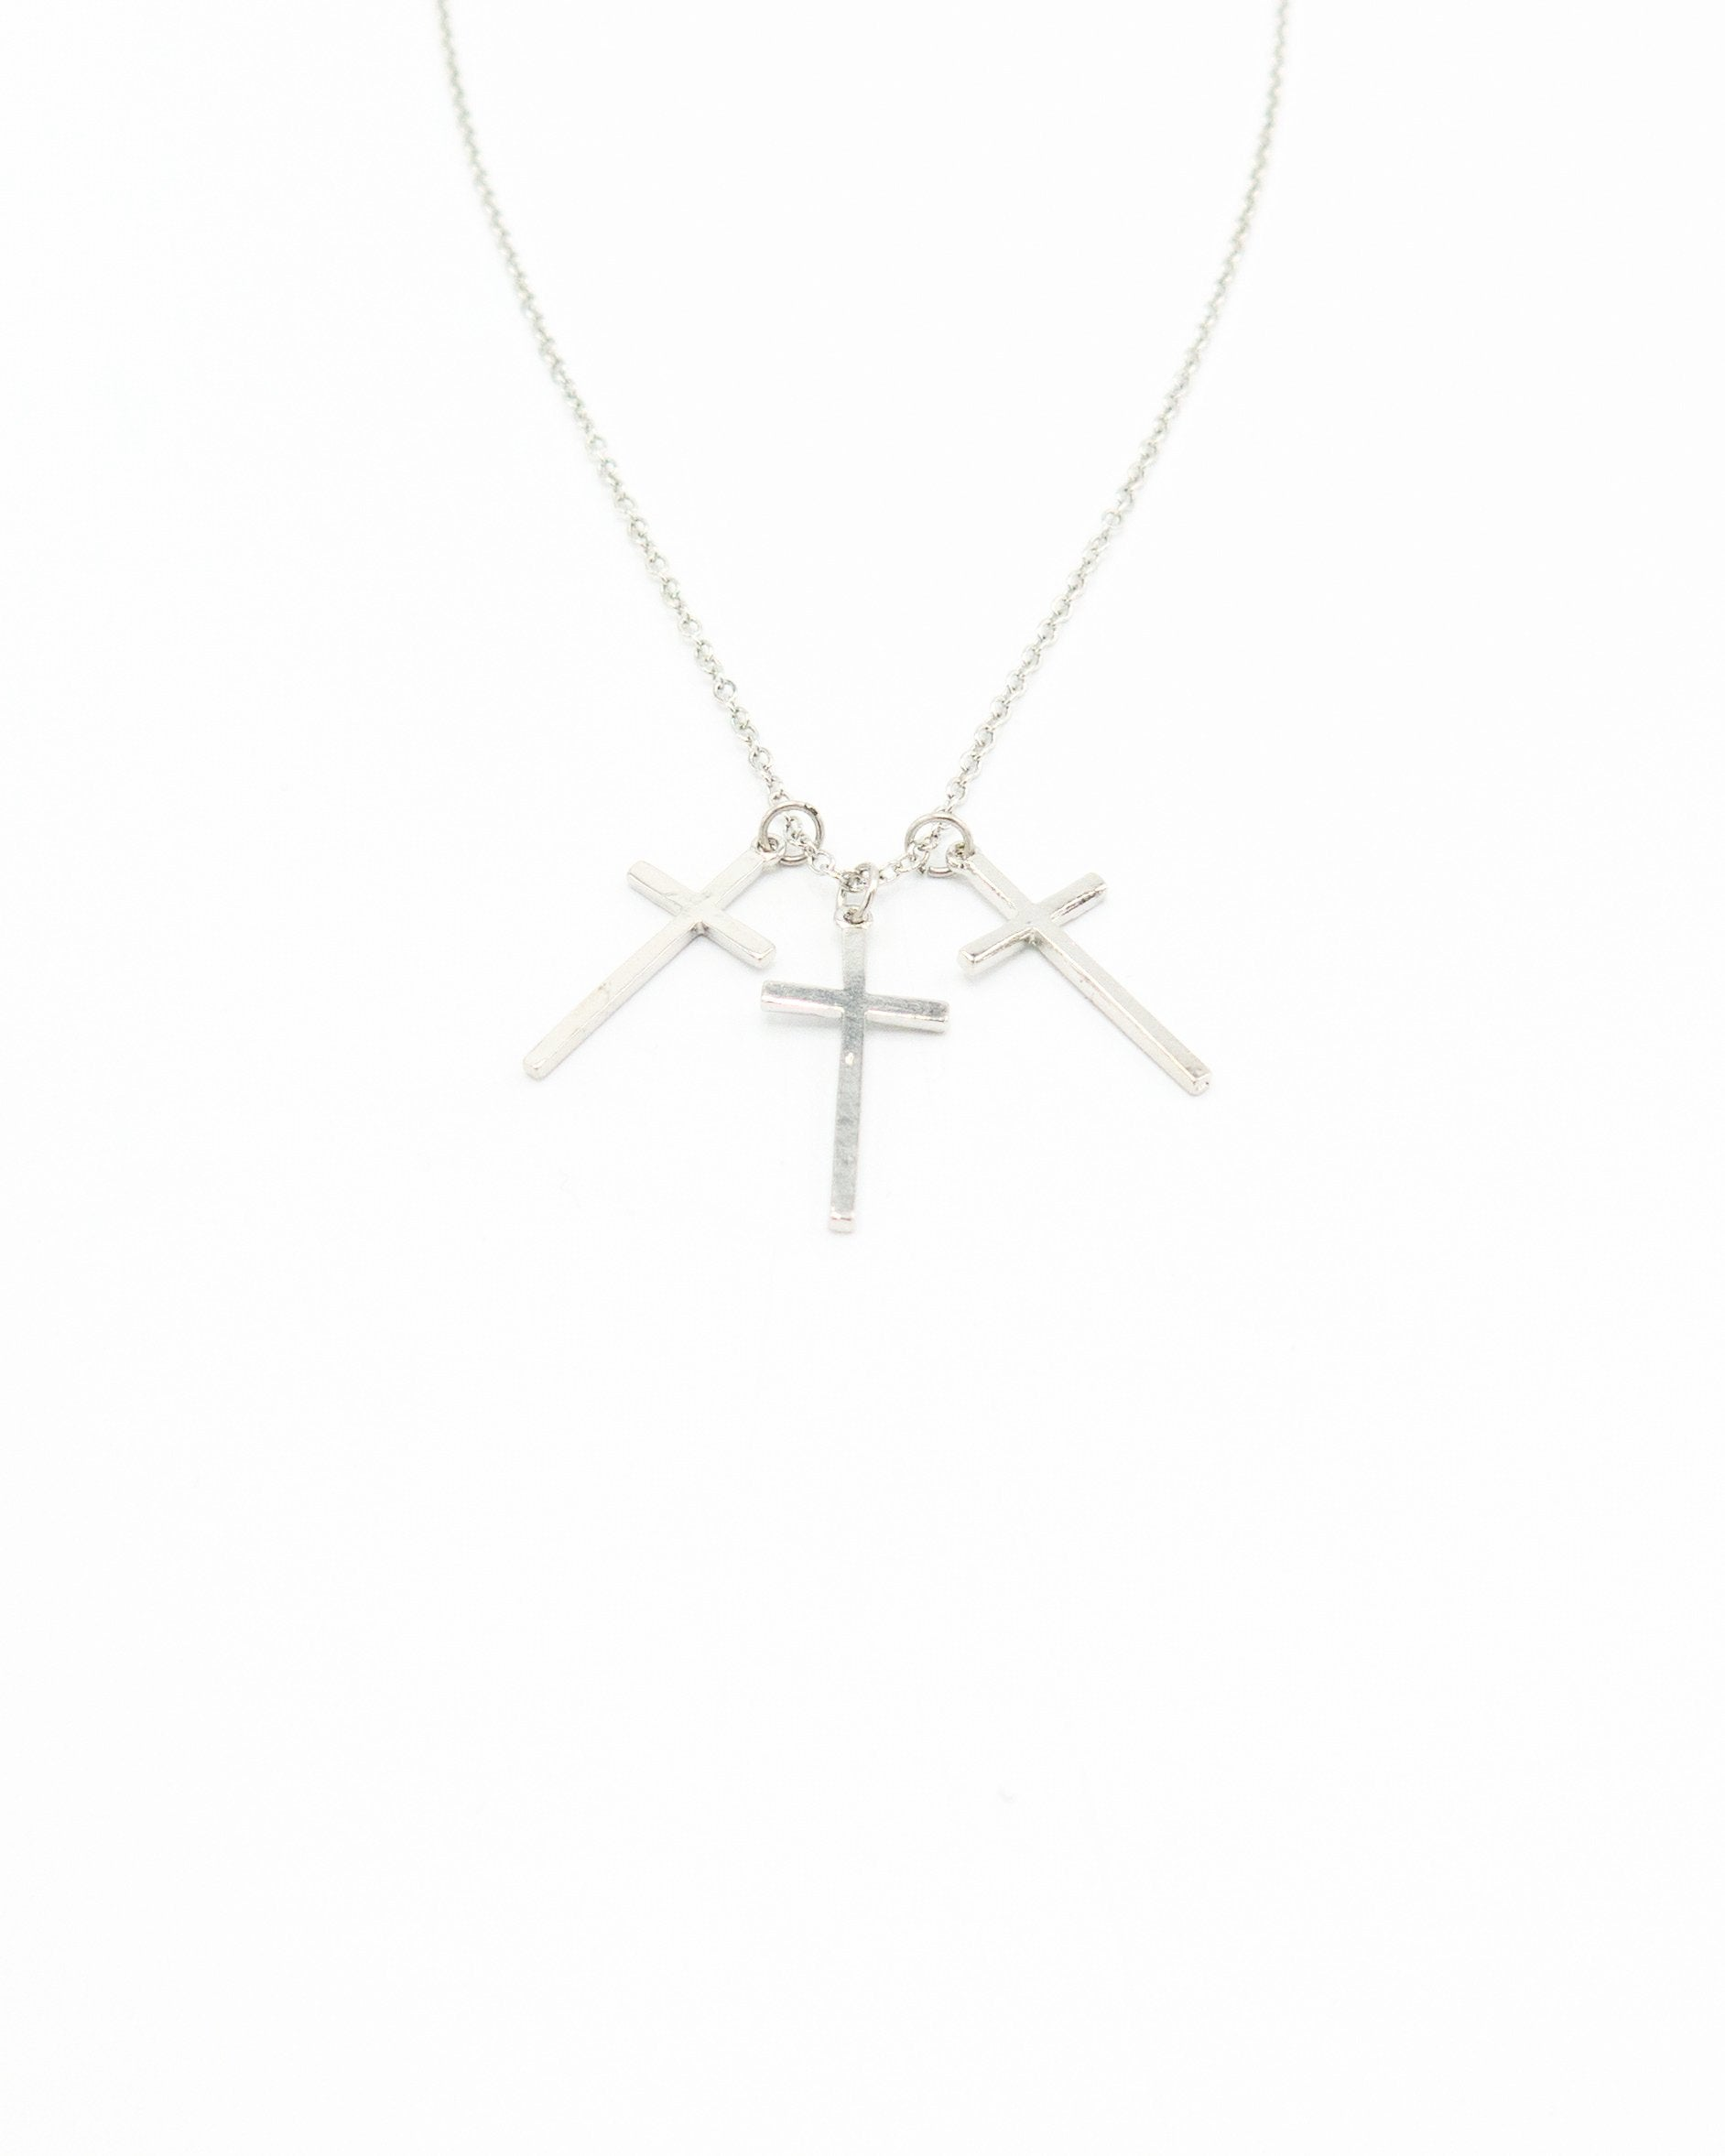 Triple Cross Silver Necklace